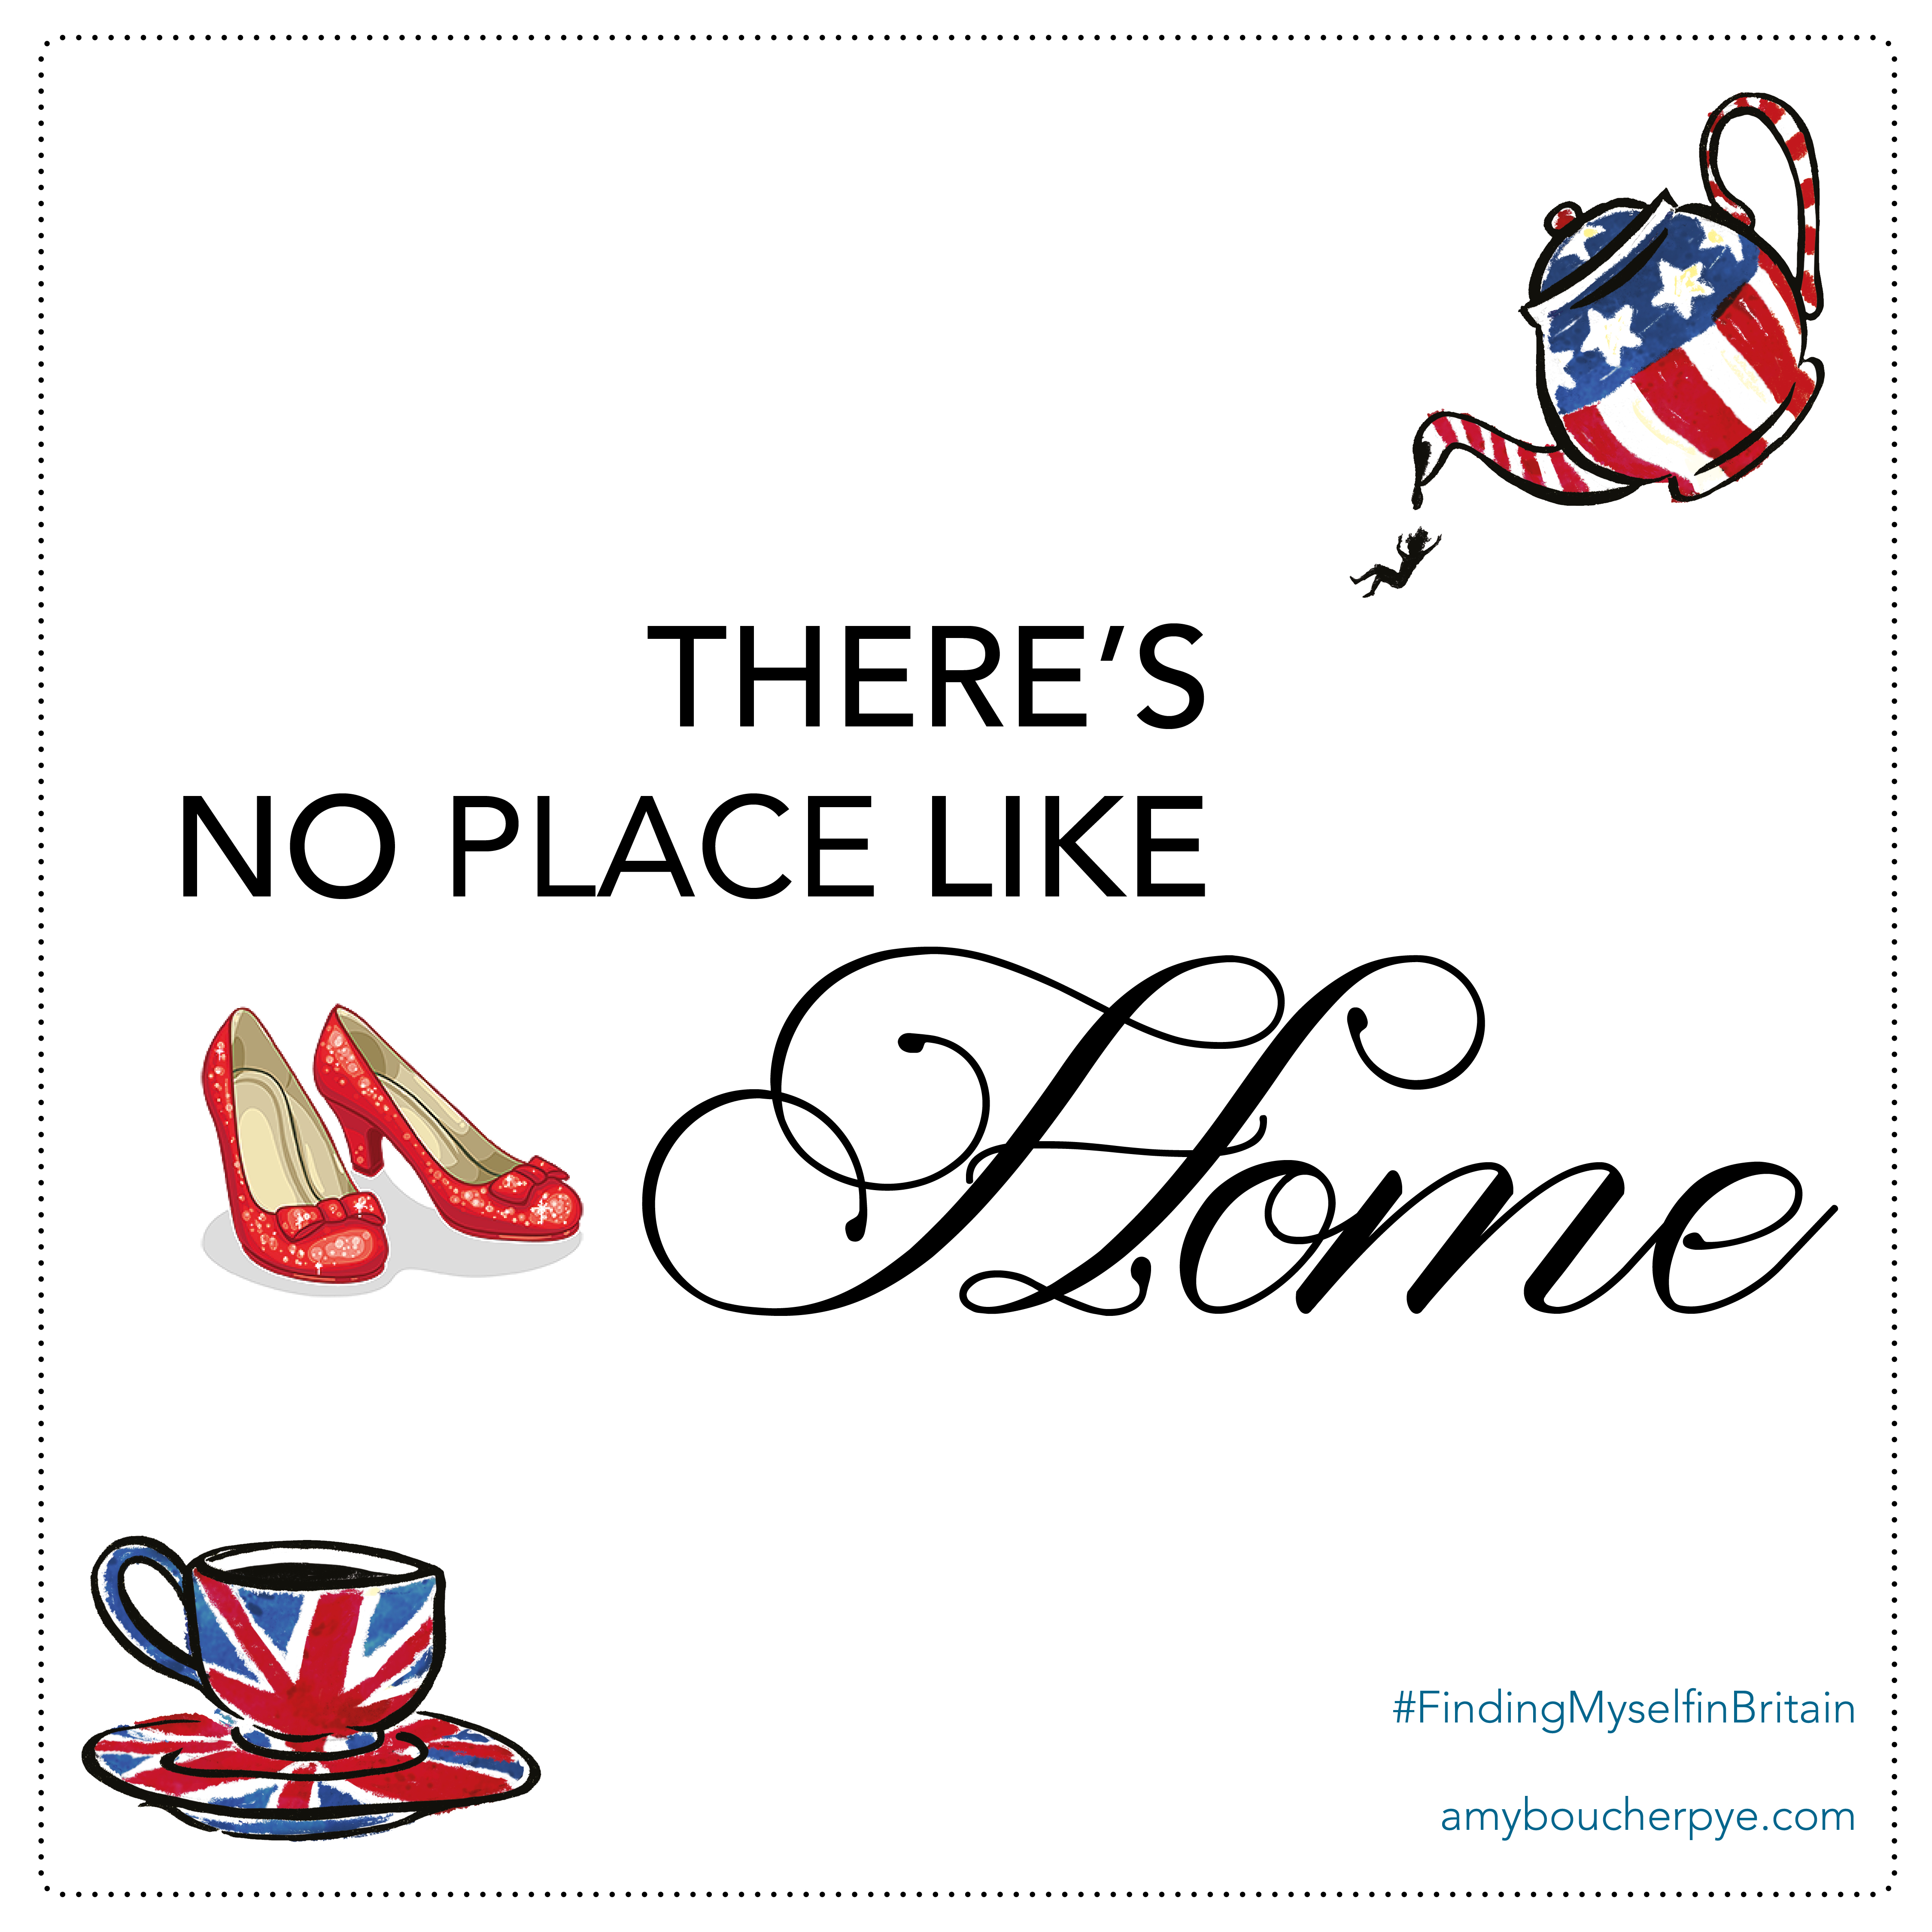 Amy Boucher Pye Theres No Place Like Home A New Series